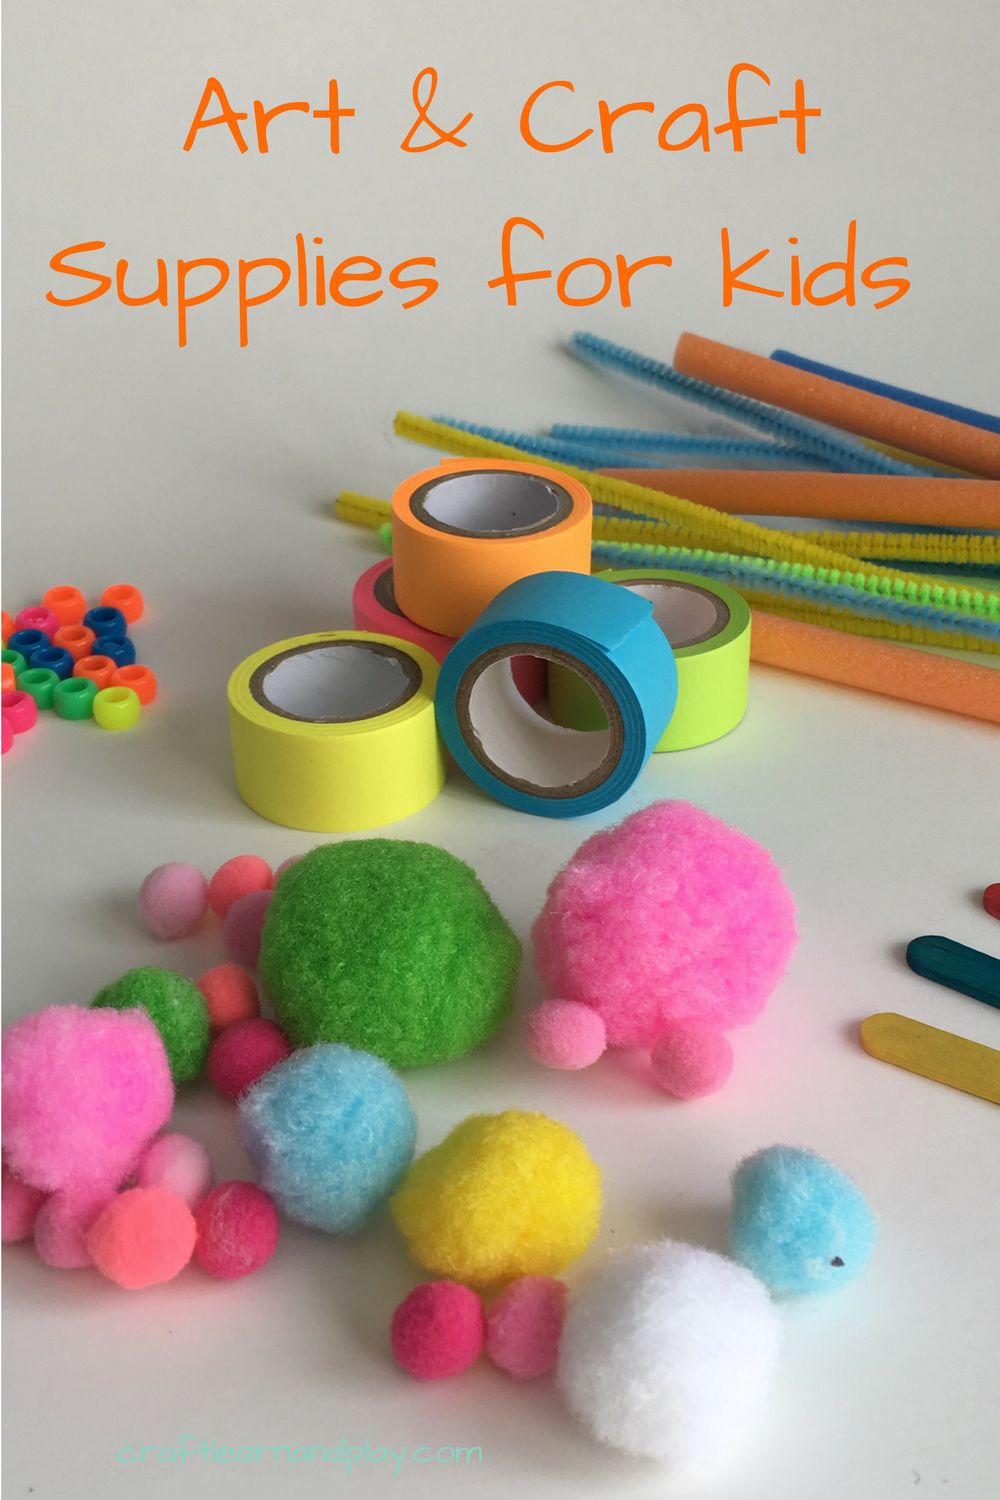 The ultimate list of crafts and arts supplies for kids contains the most used craft supplies for toddlers and preschoolers. List also includes objects you can collect in nature, up-cycled materials and household objects that can be used for kids crafts. Click for full list plus download free list that you can custoimize.